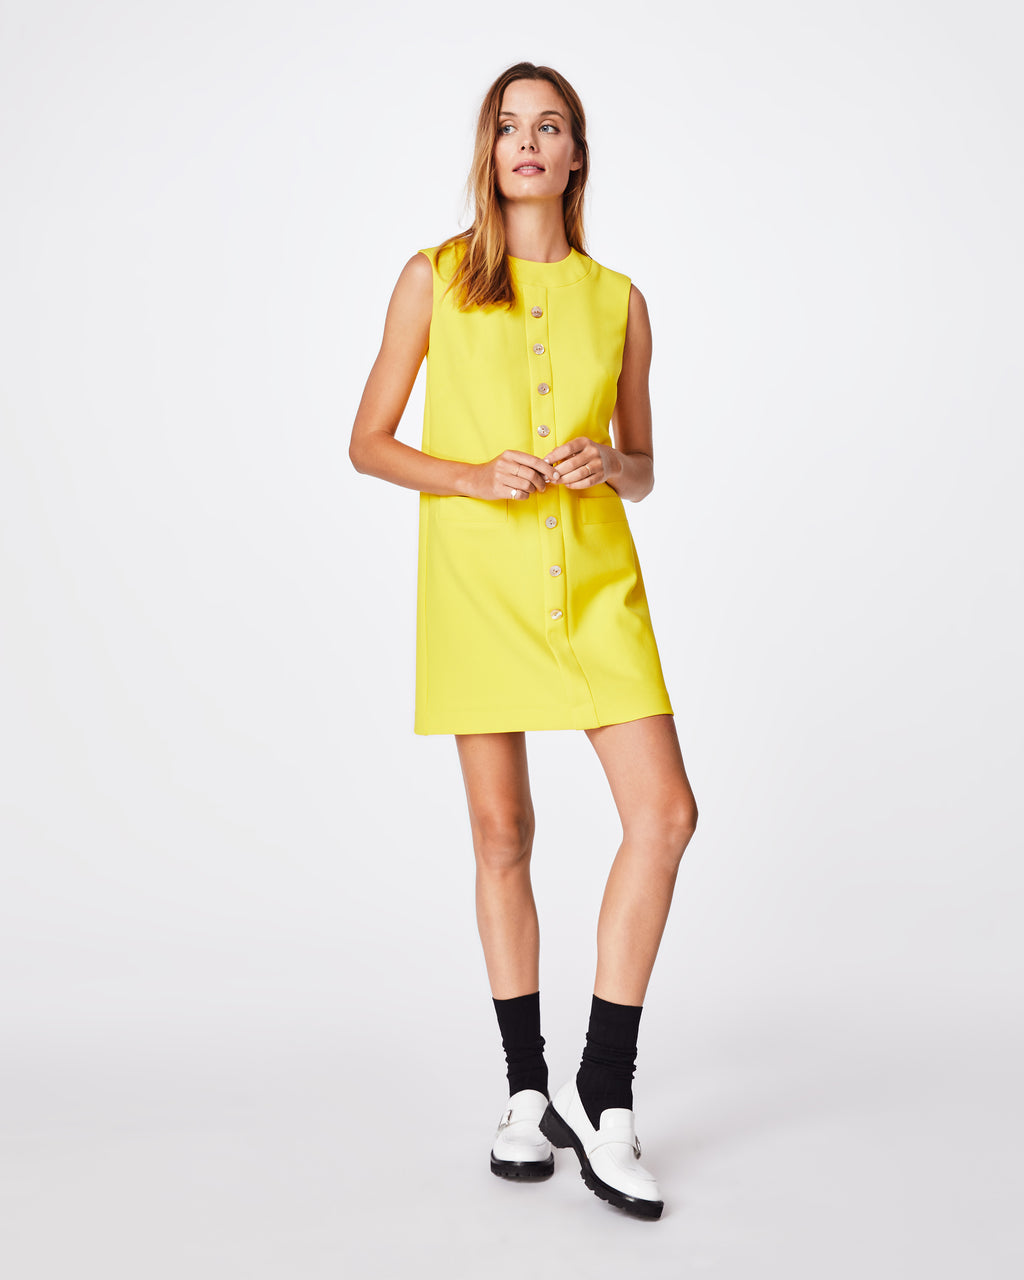 BM10211 - STRETCHY TECH MOD DRESS - dresses - midi - Miss Mod. This colorful midi dress has a simple, straight fit while showcasing button details down the middle. Retro sunglasses and high socks are required. Exposed back zipper, lined.